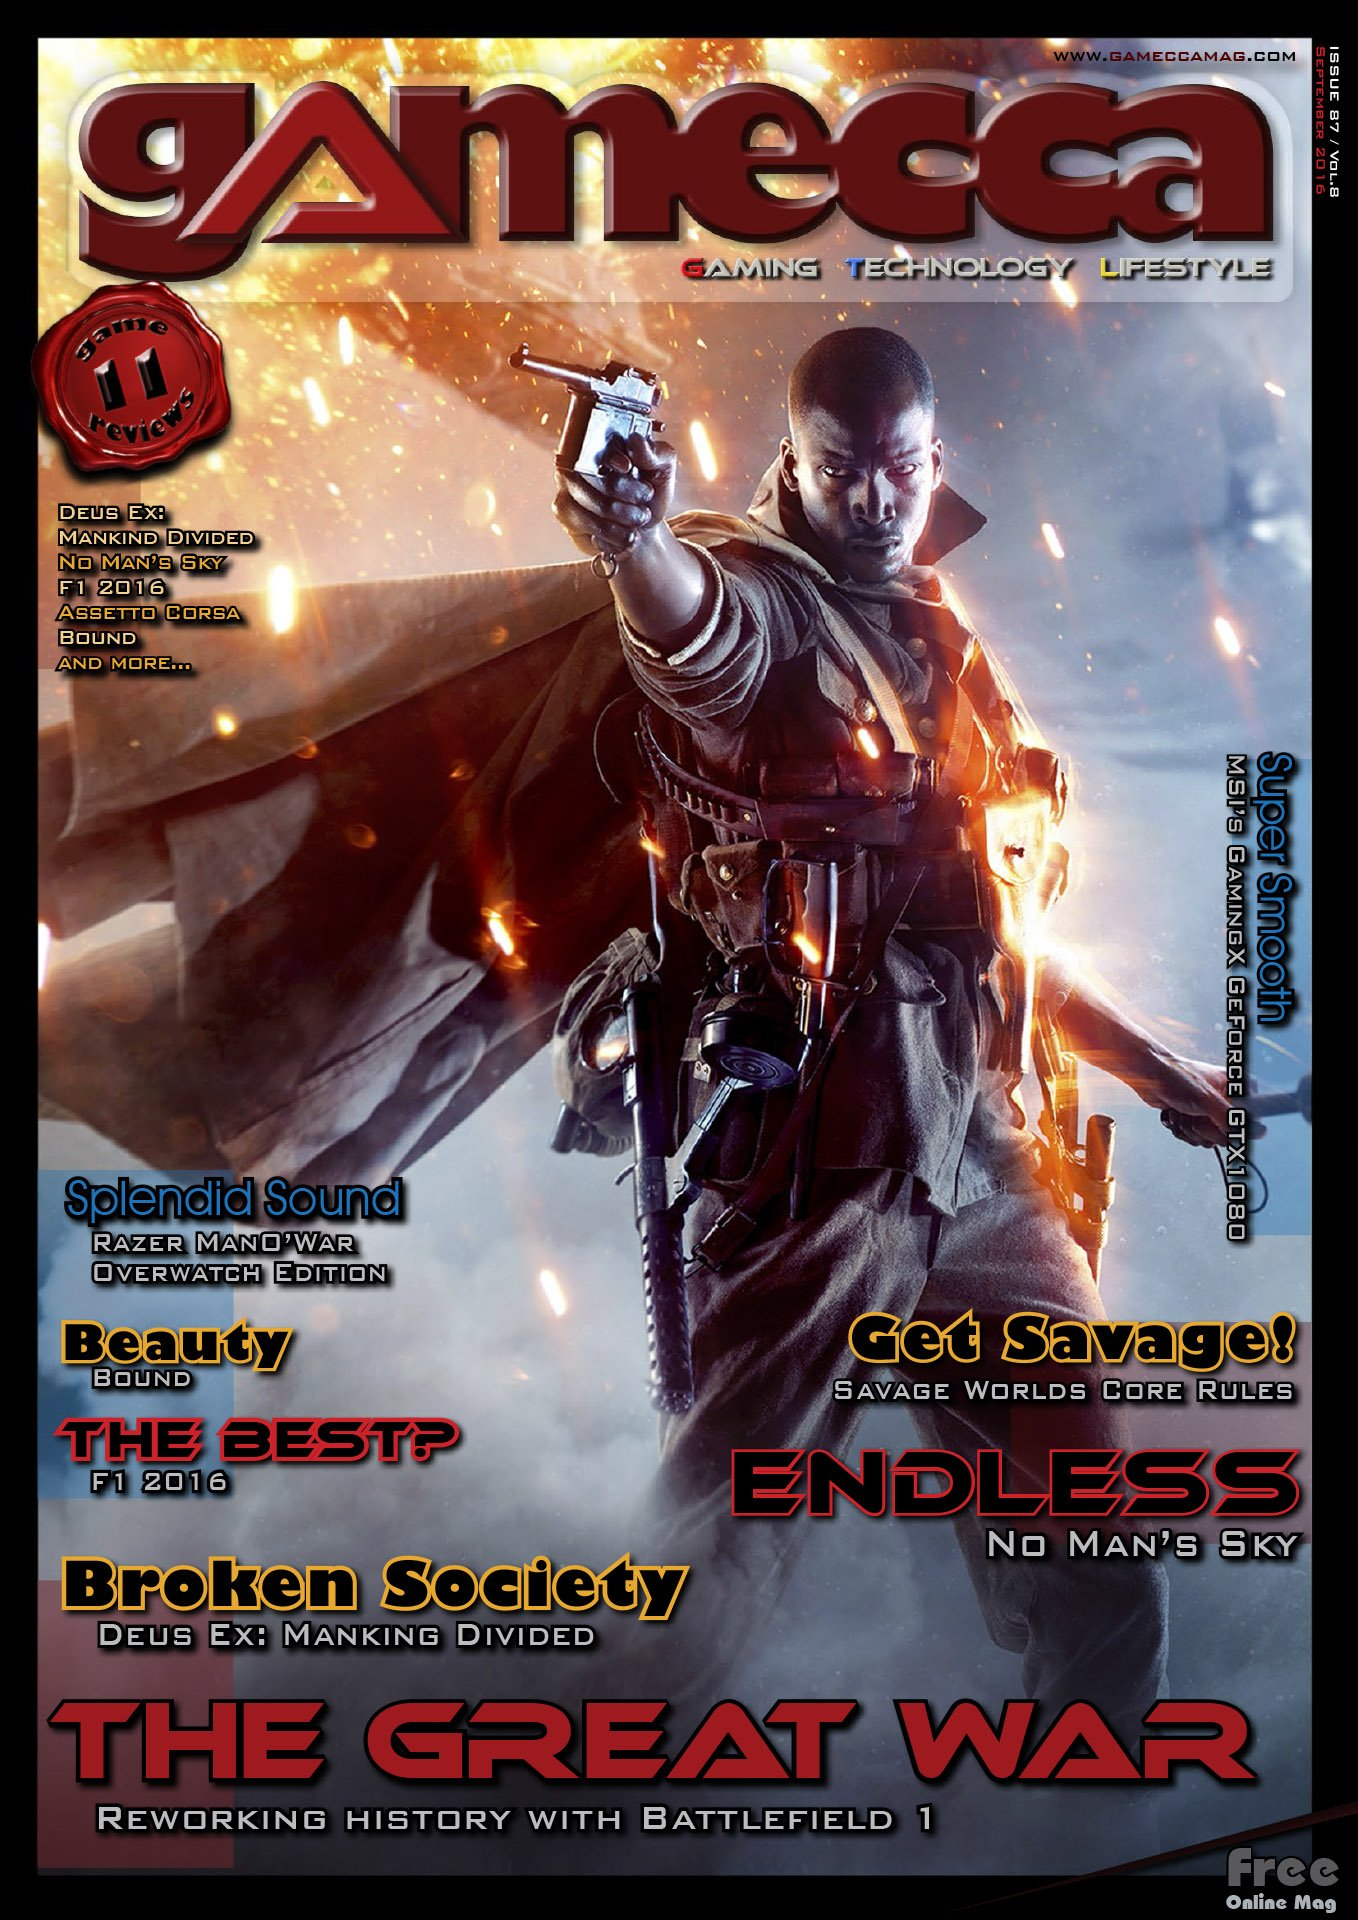 Gamecca 087 (September 2016)